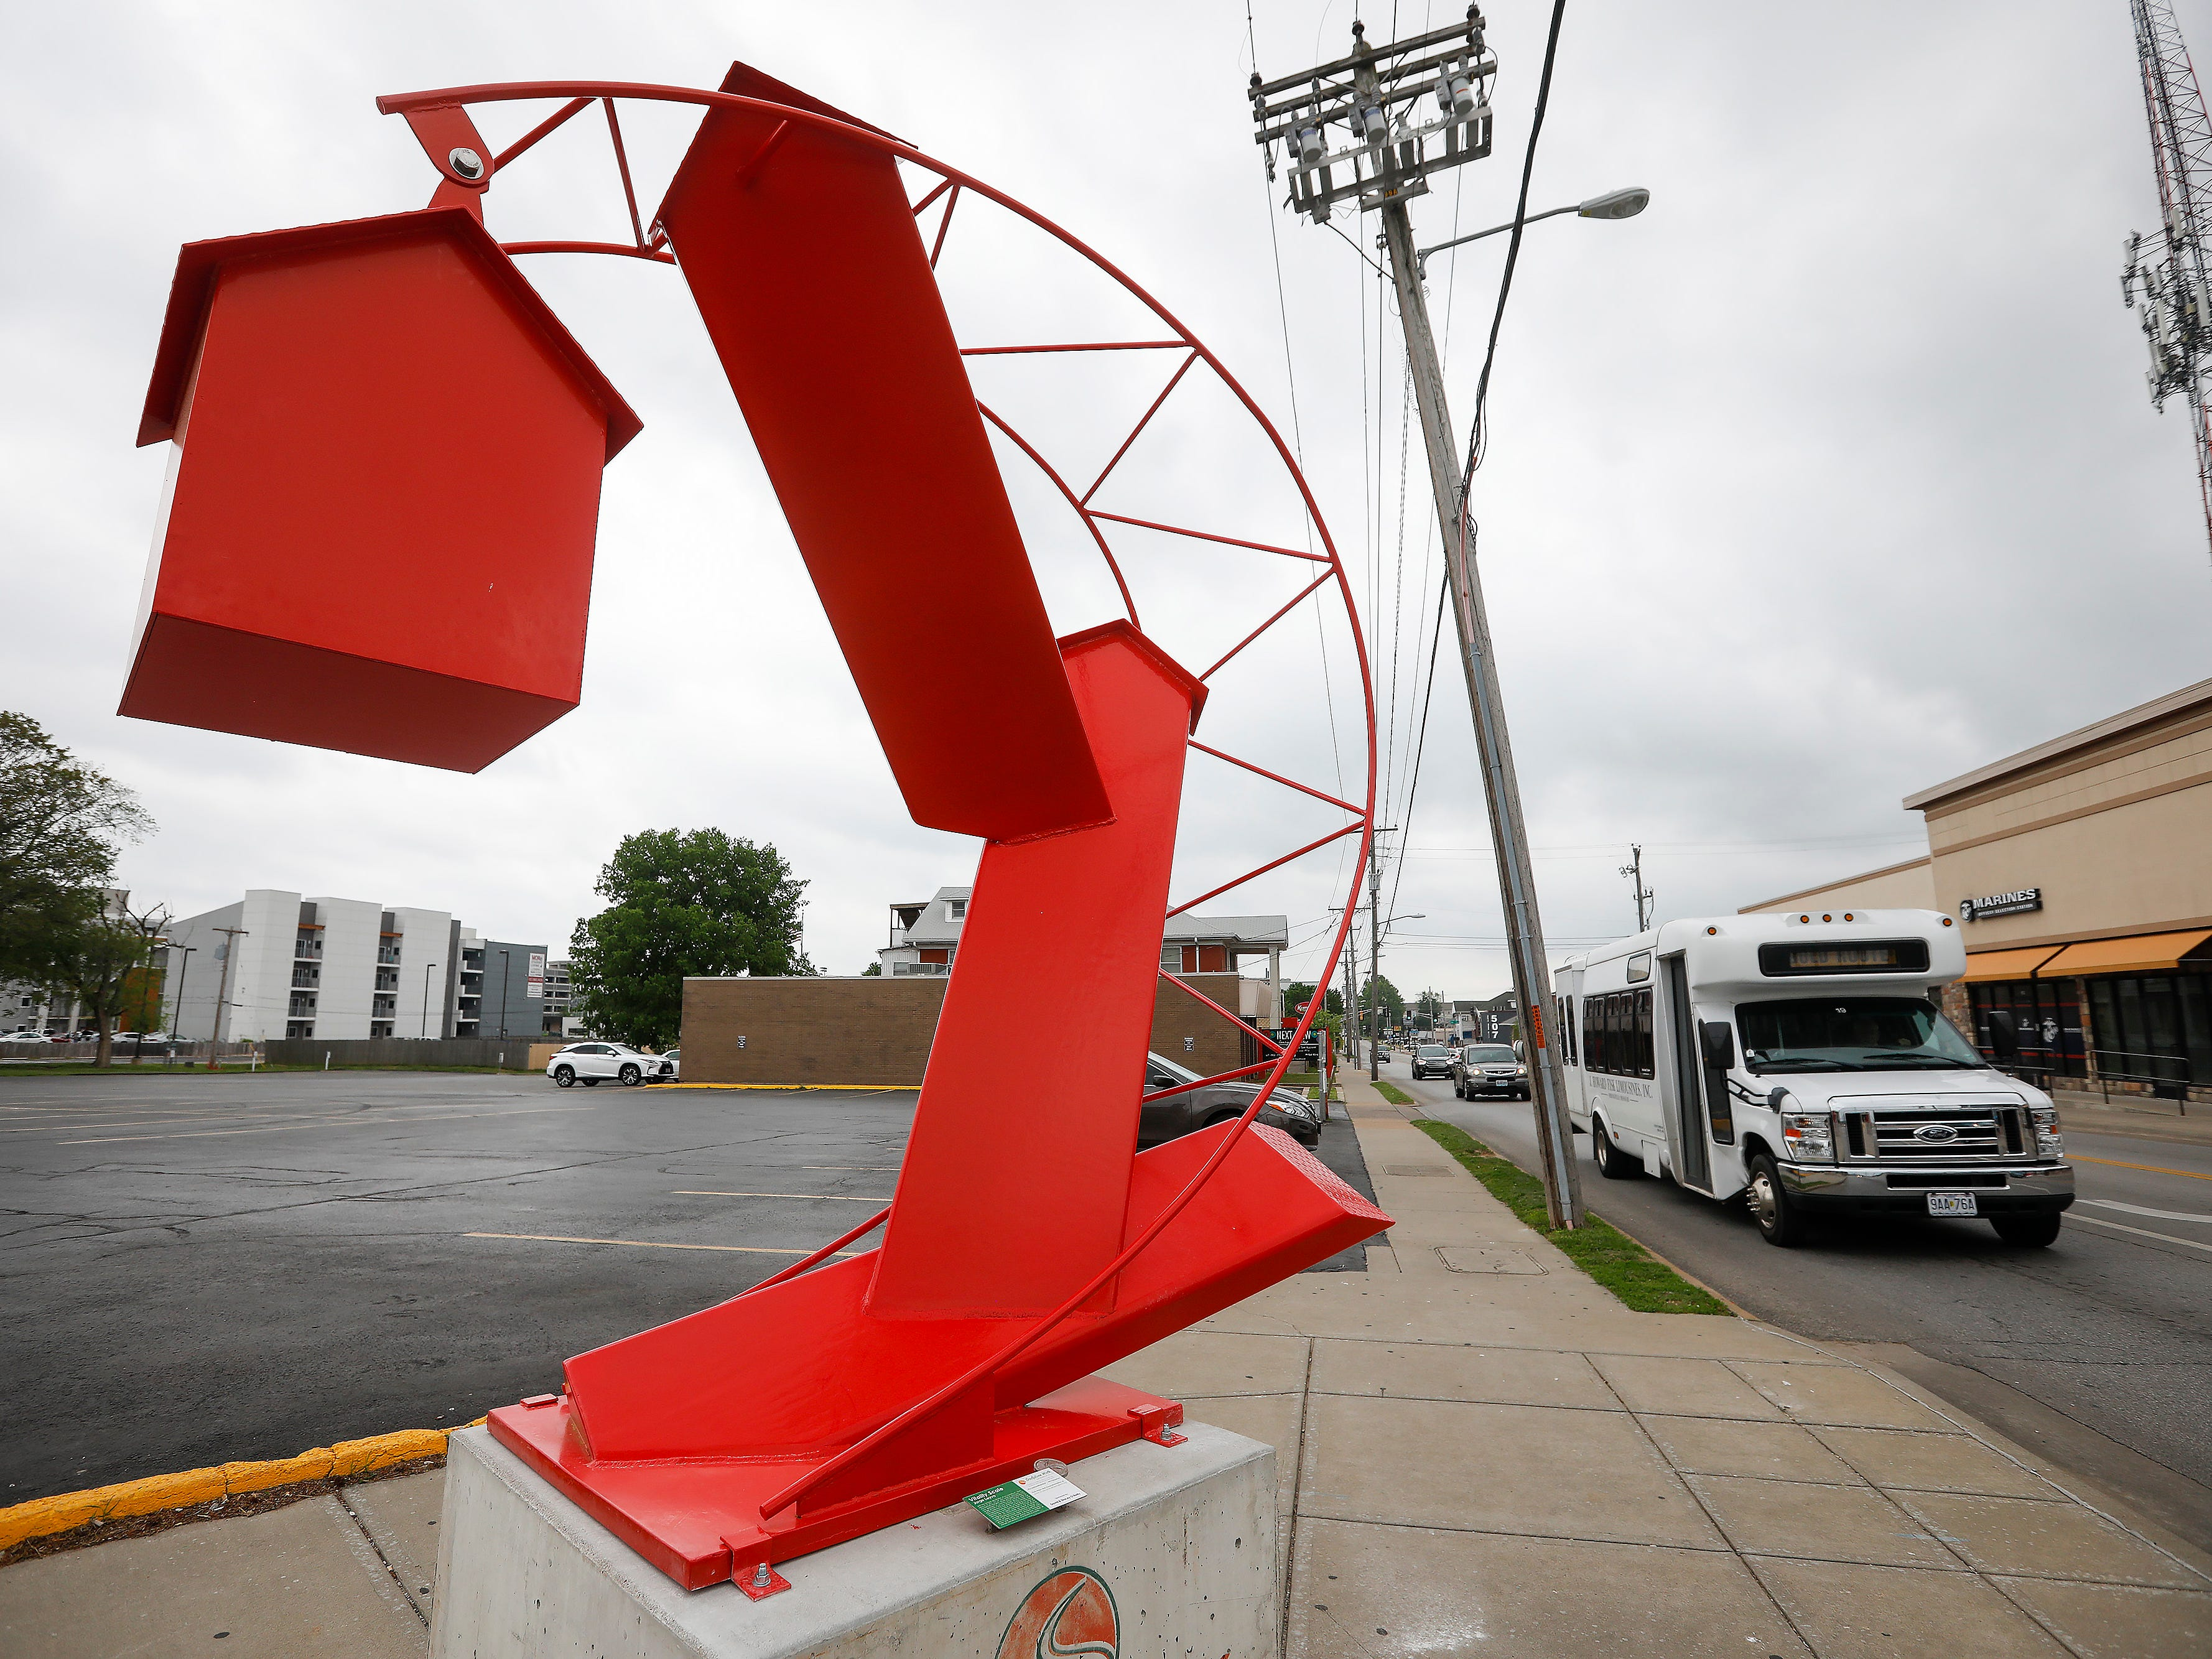 """Vitality Scale"" by Jorge Leyva is located at Kimbrough Avenue and Walnut Street."